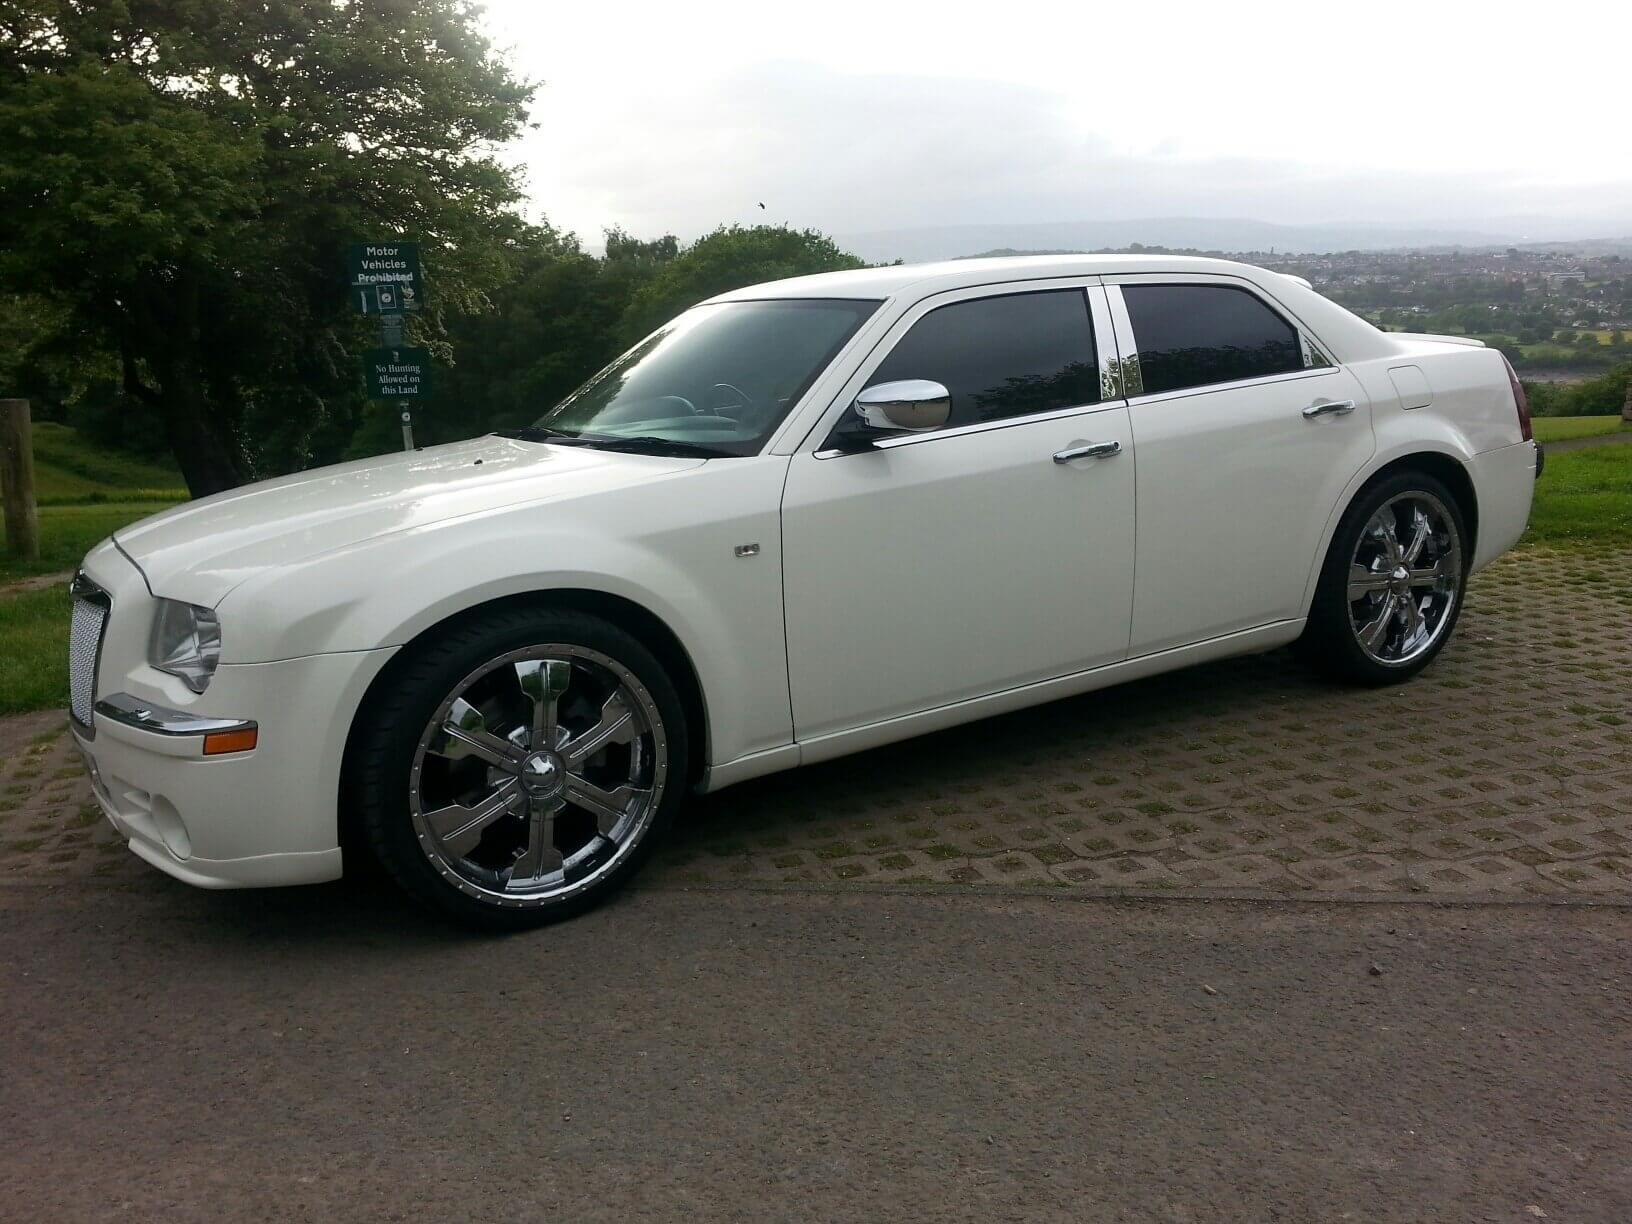 Chrysler 300c Baby Bentley - Limousine And Limo Hire Cardiff